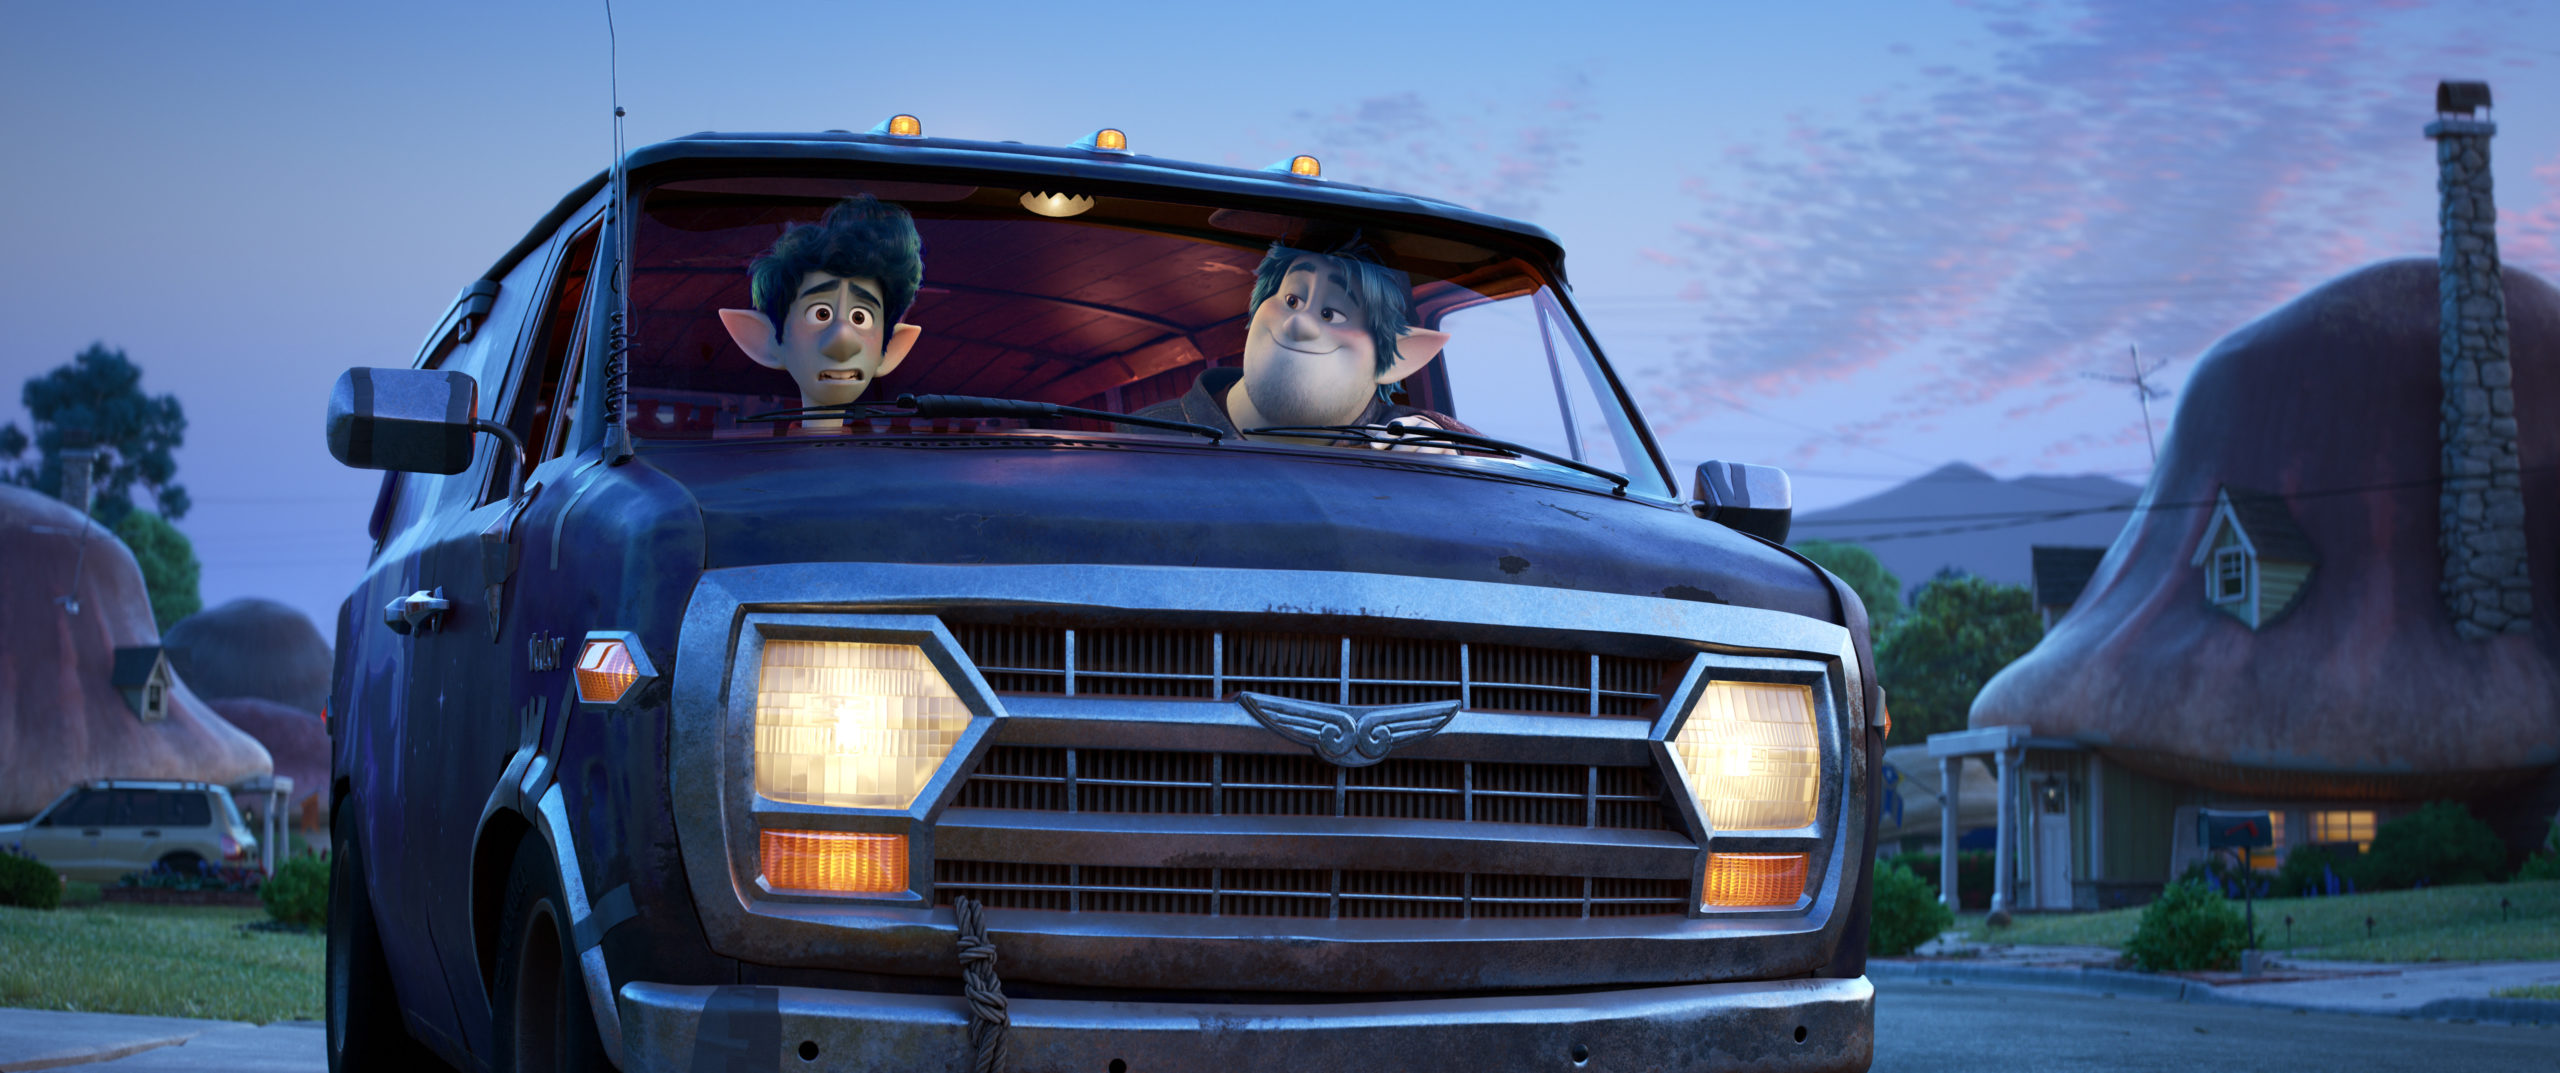 Onward Disney Pixar Film